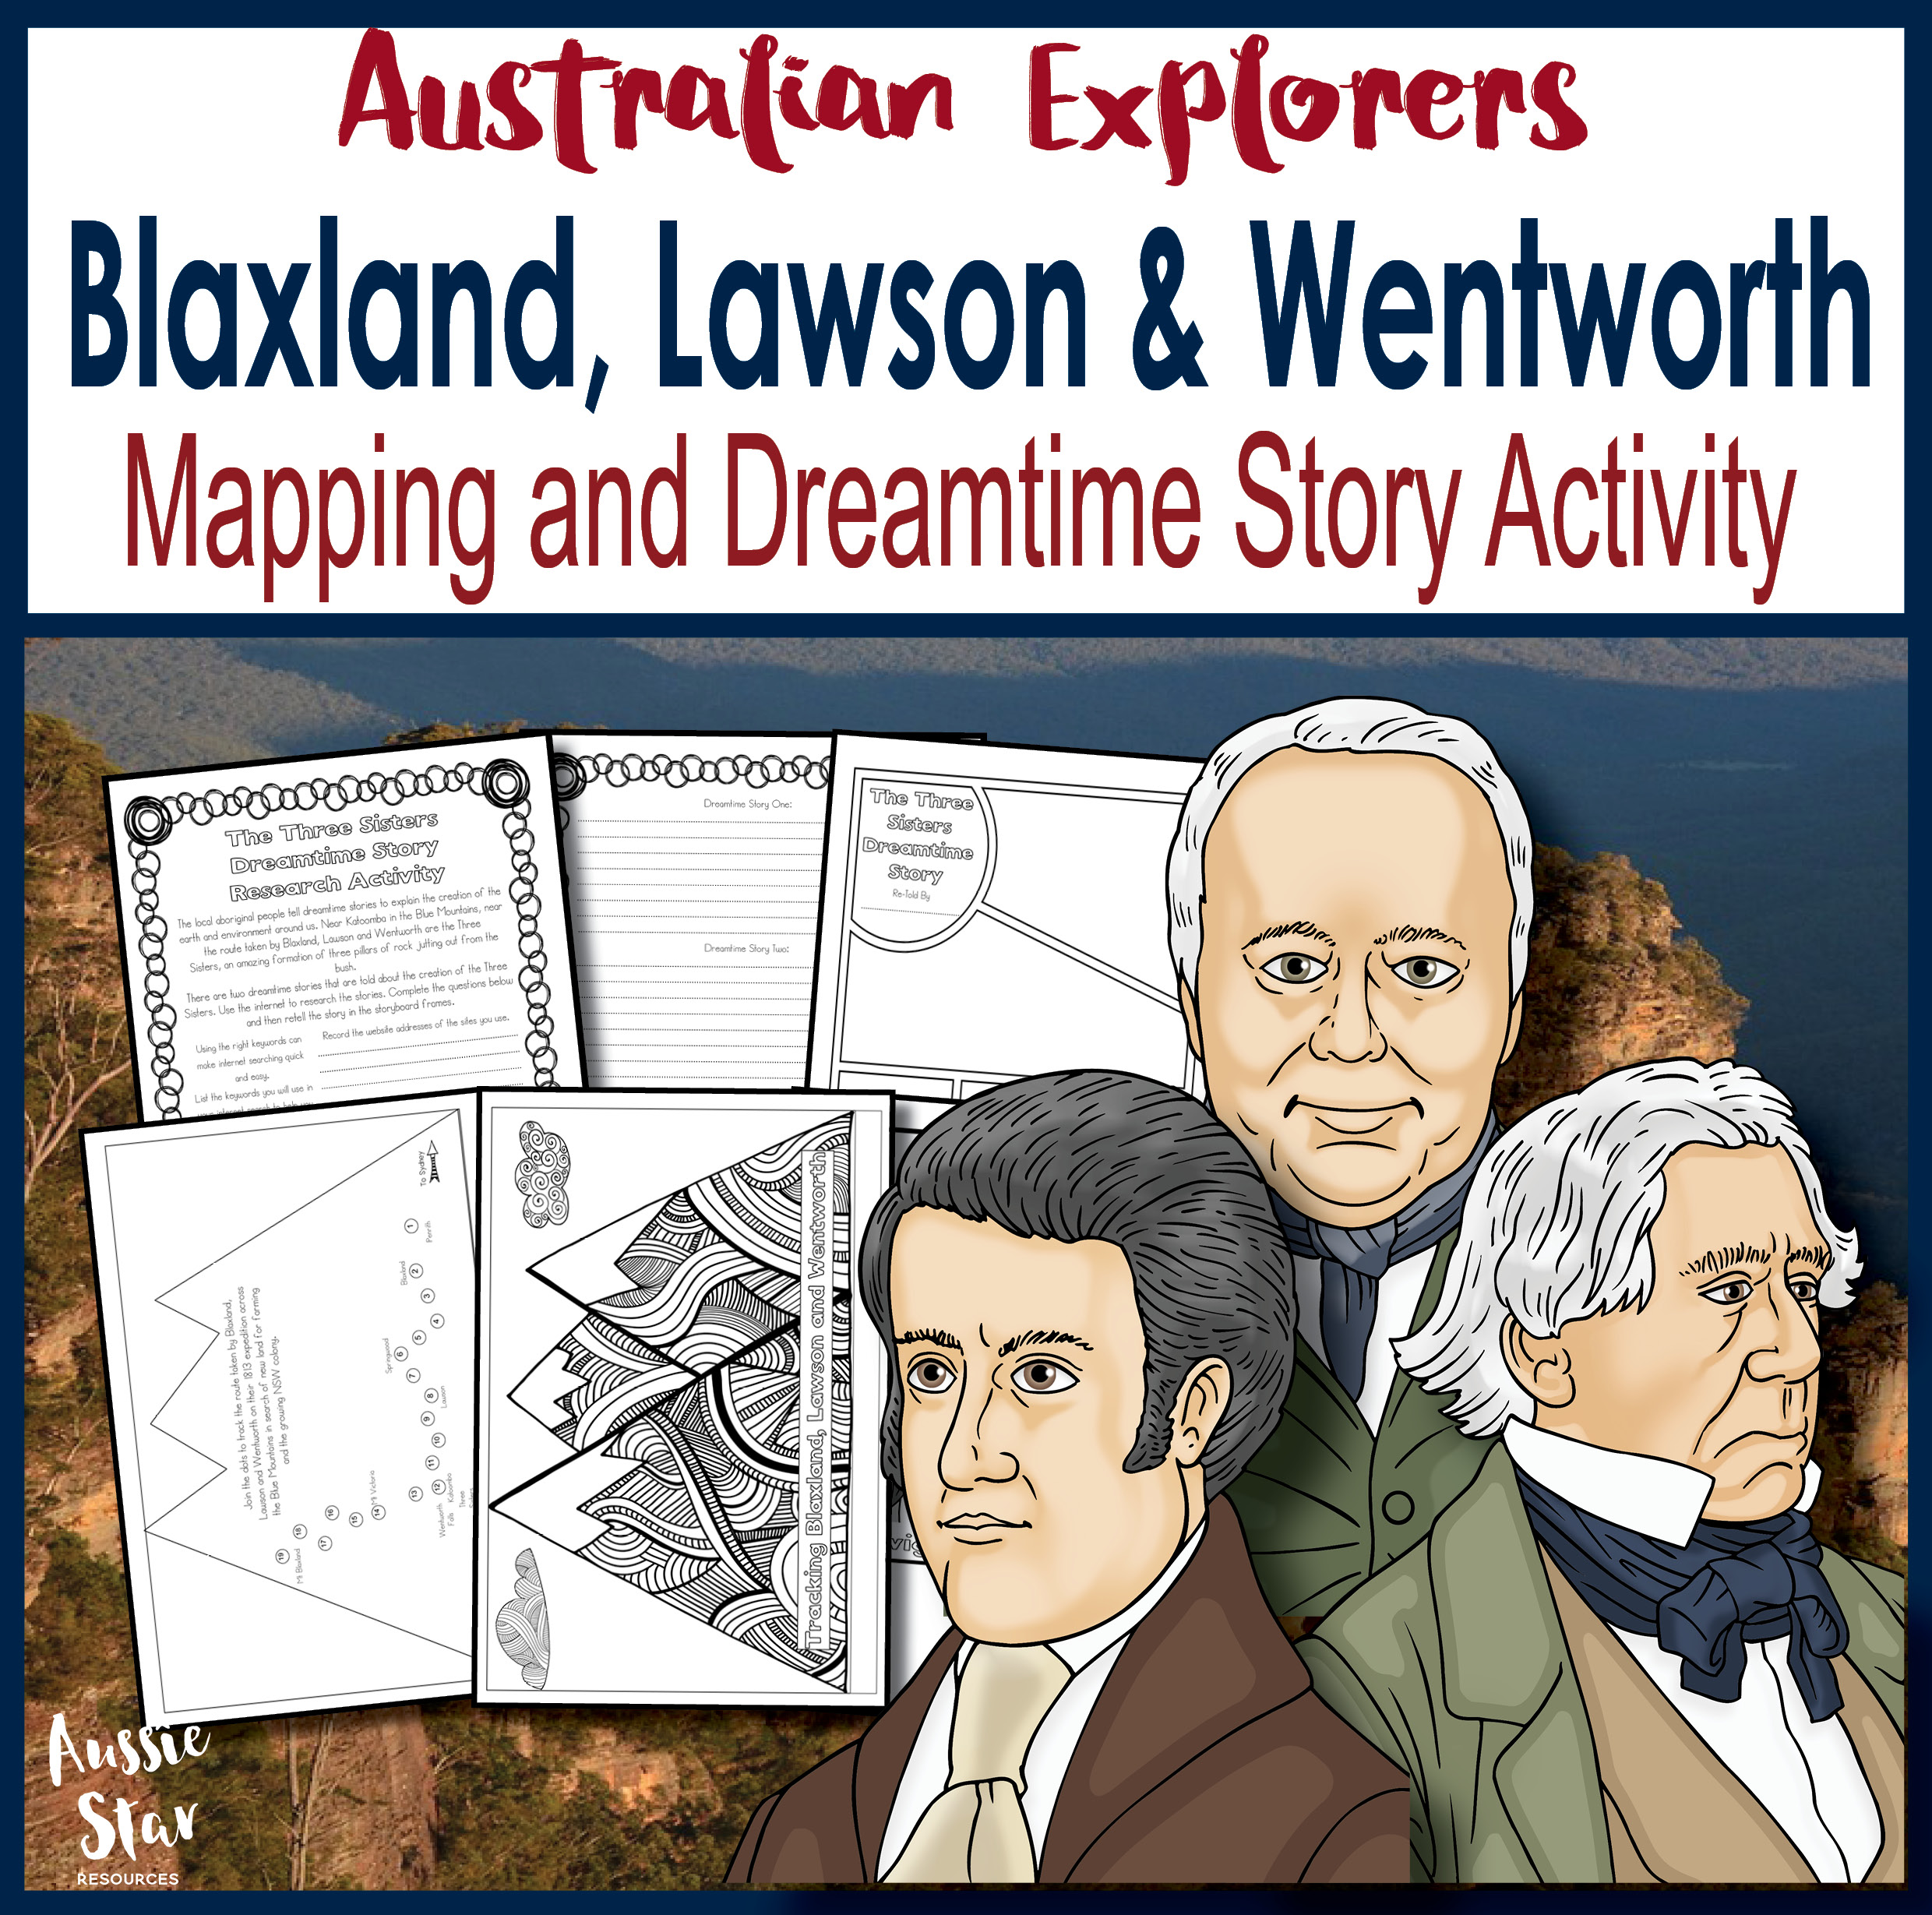 Blaxland, Lawson and Wentworth map and dreamtime story